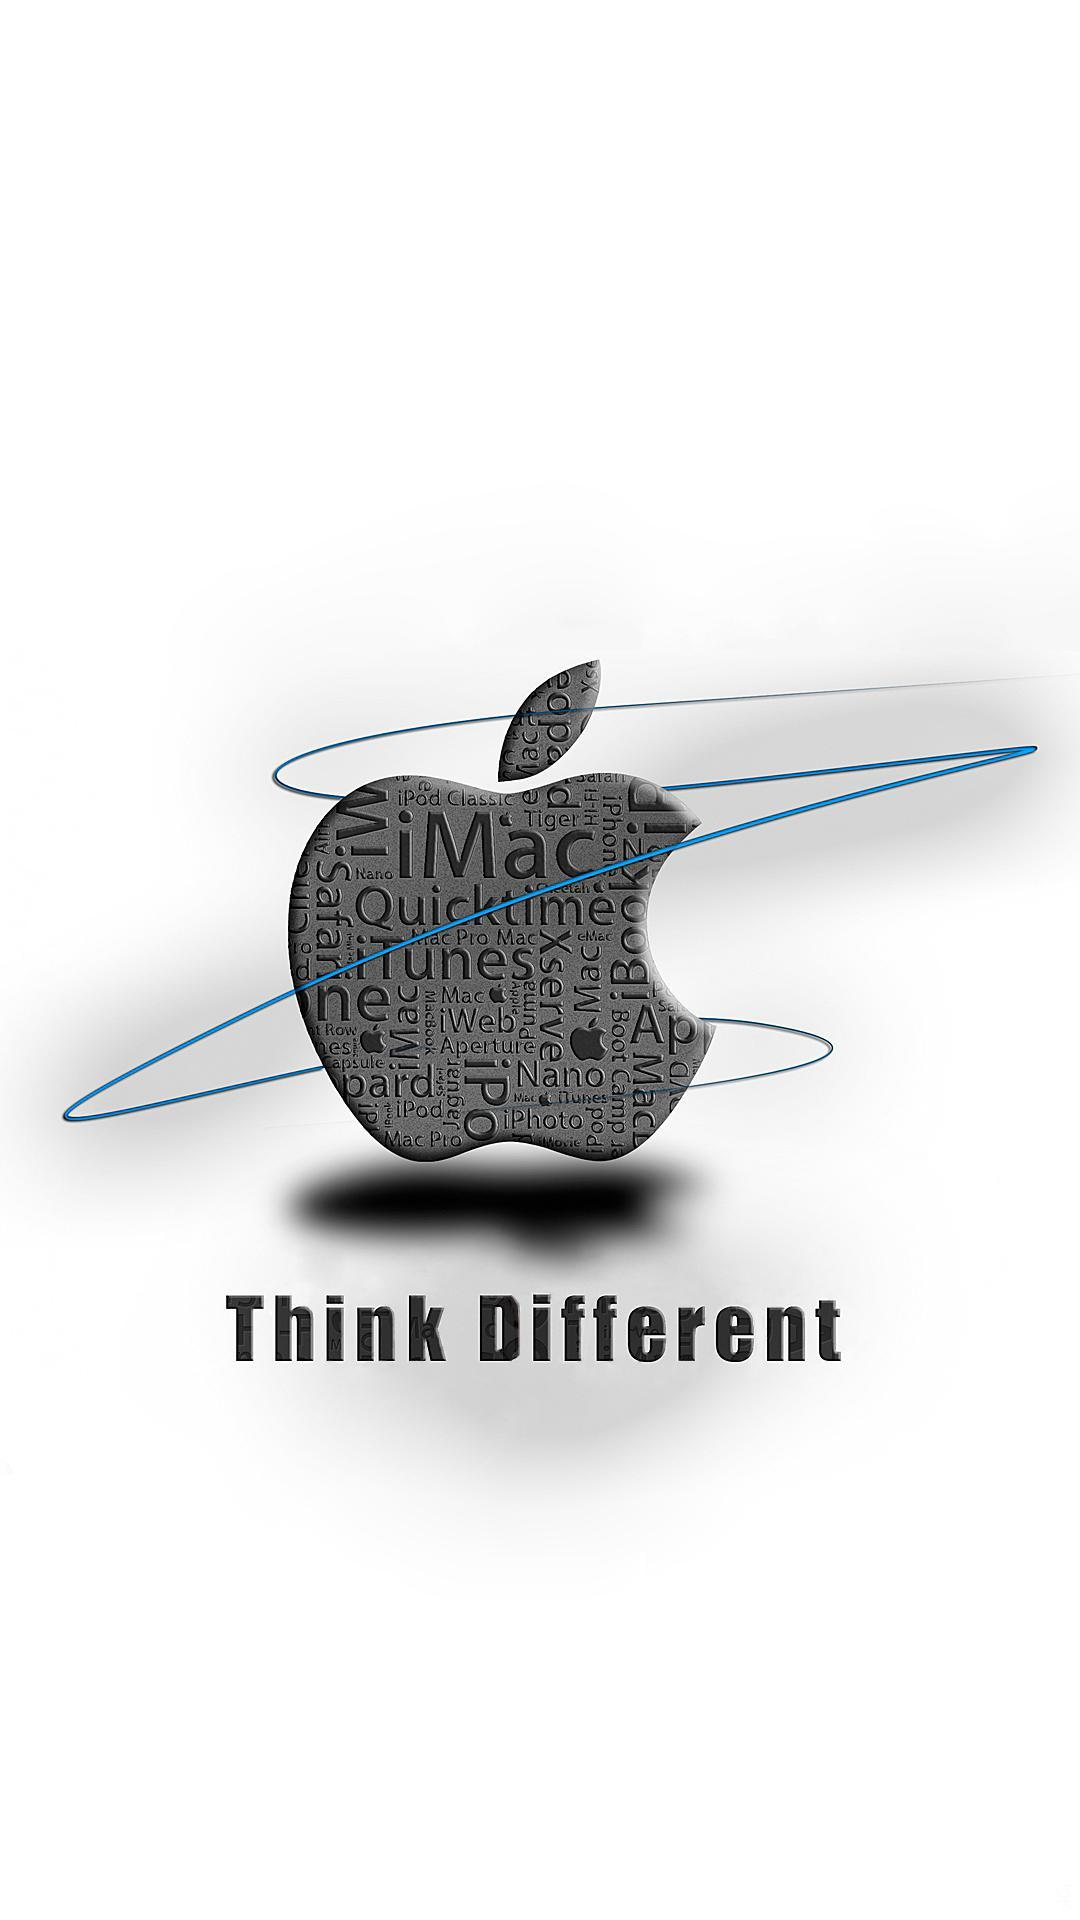 think different | iphone wallpaper